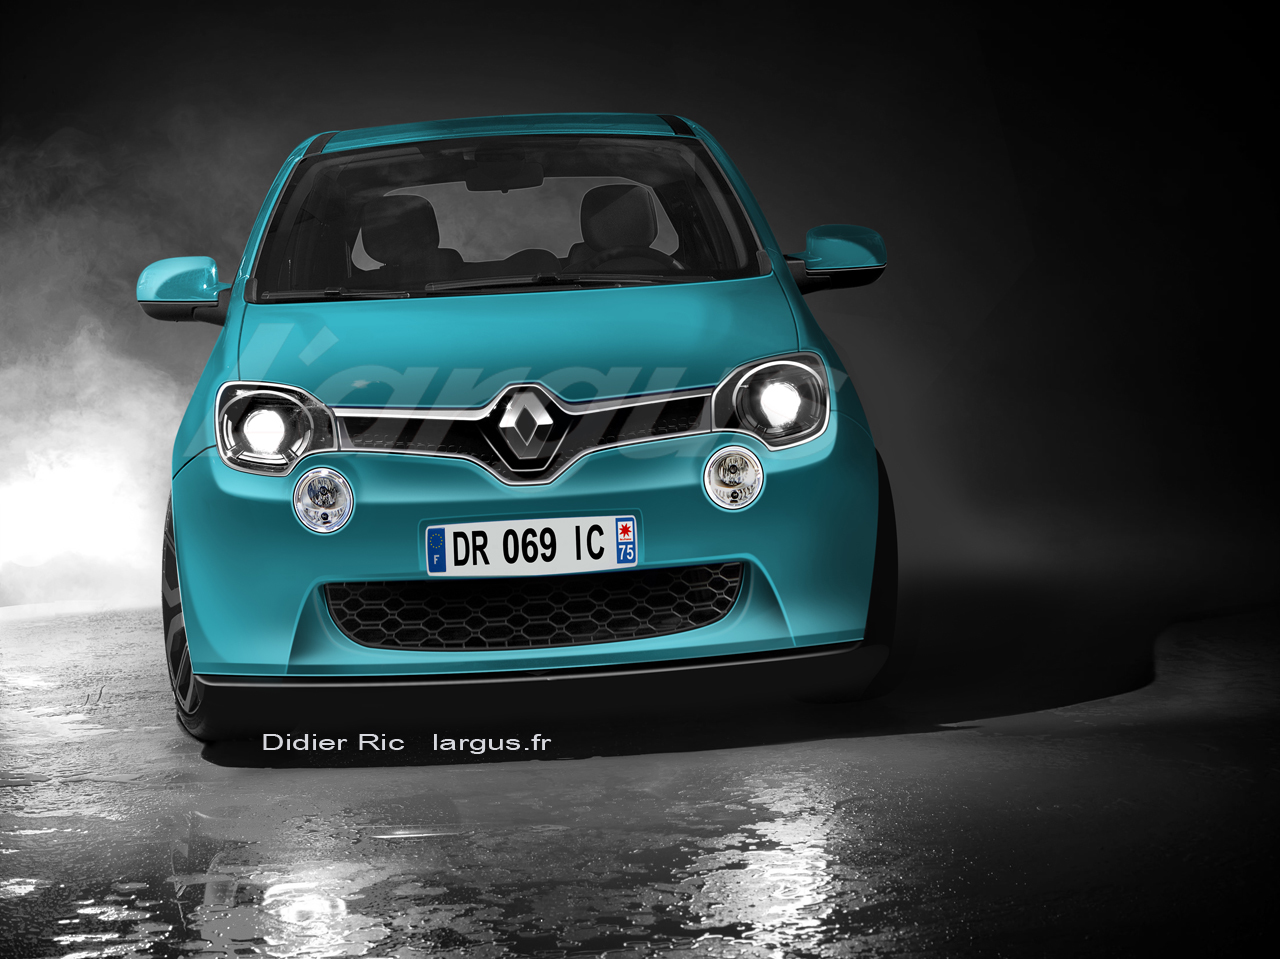 Les photos exclusives de la nouvelle Renault Twingo III 2014